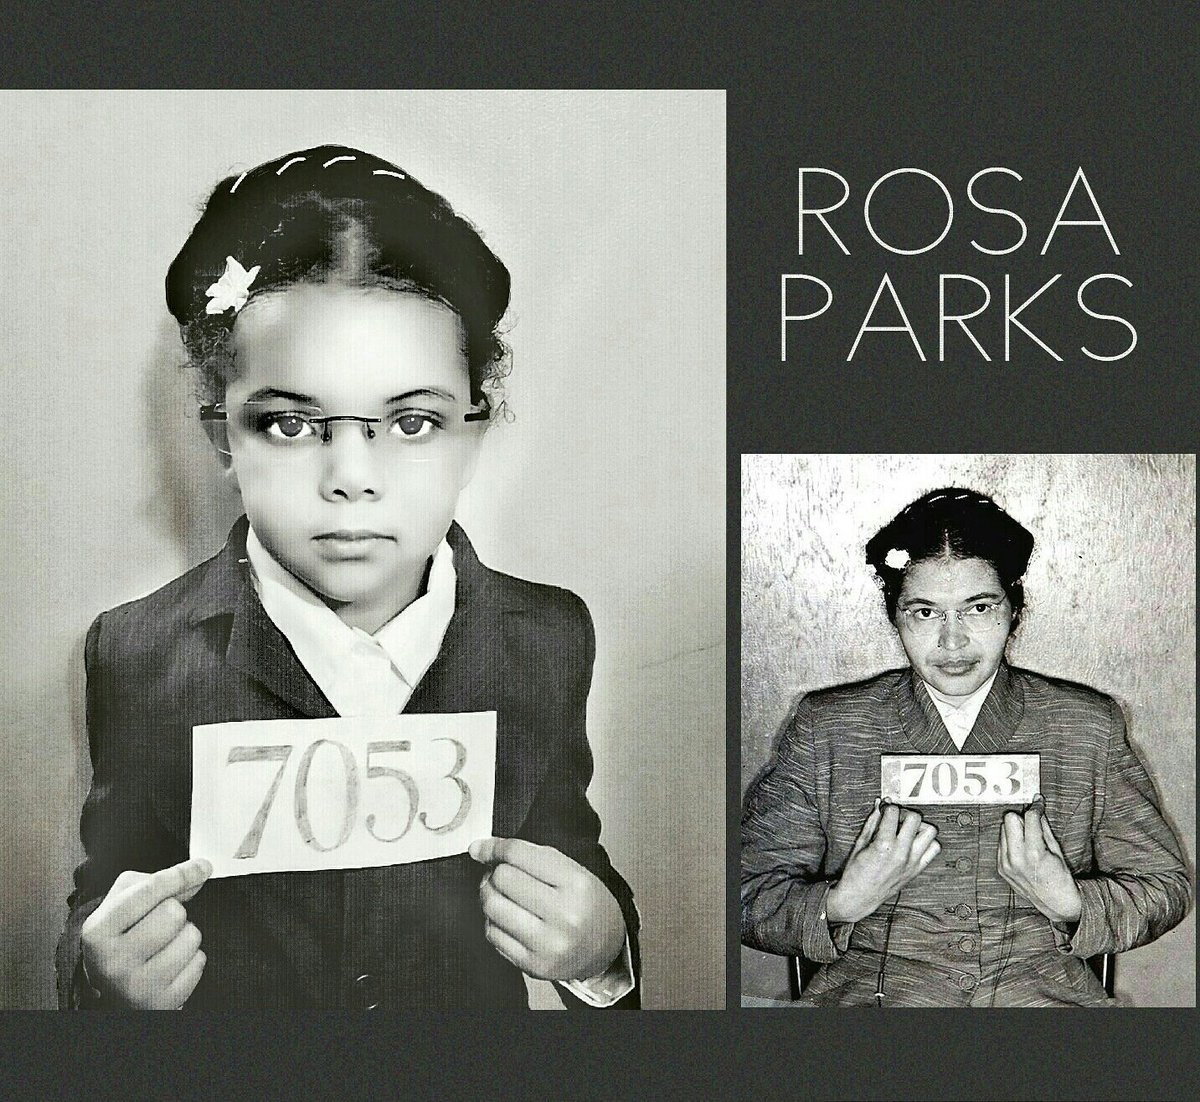 Adorable 5 Year Old Recreates Photos Of Iconic Women For